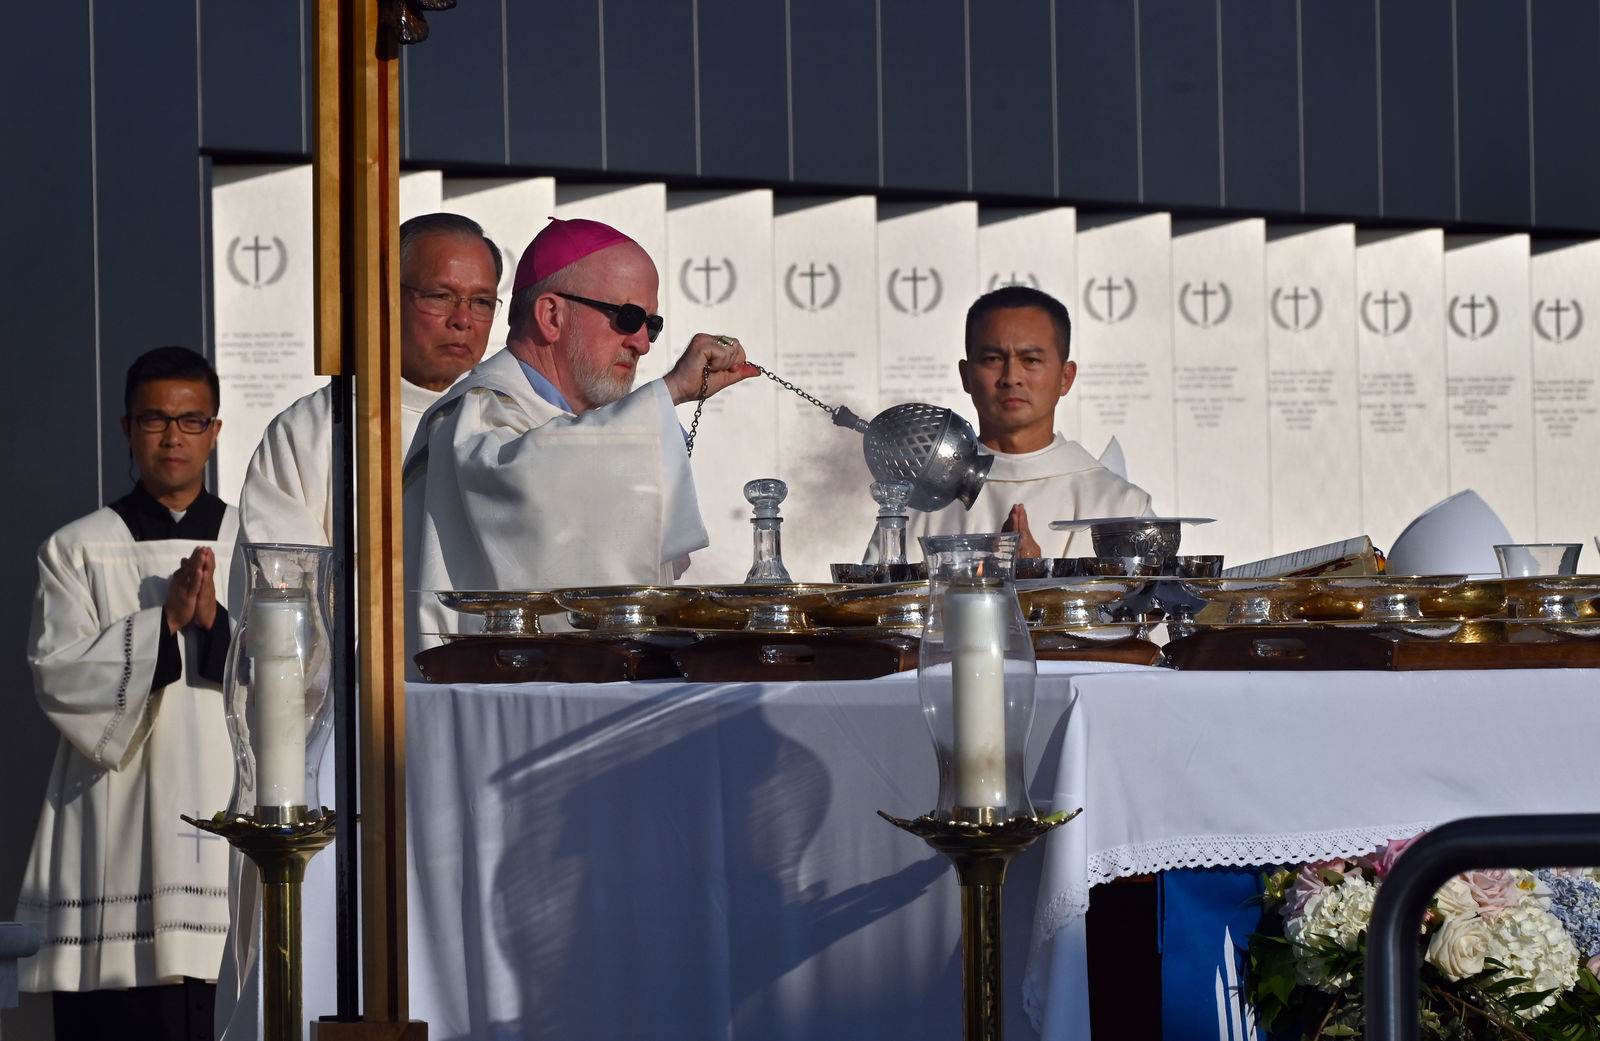 Bishop Kevin Vann holds an incense brazier during Our Lady of La Vang Solemn Blessing Day. Photo courtesy Diocese of Orange.